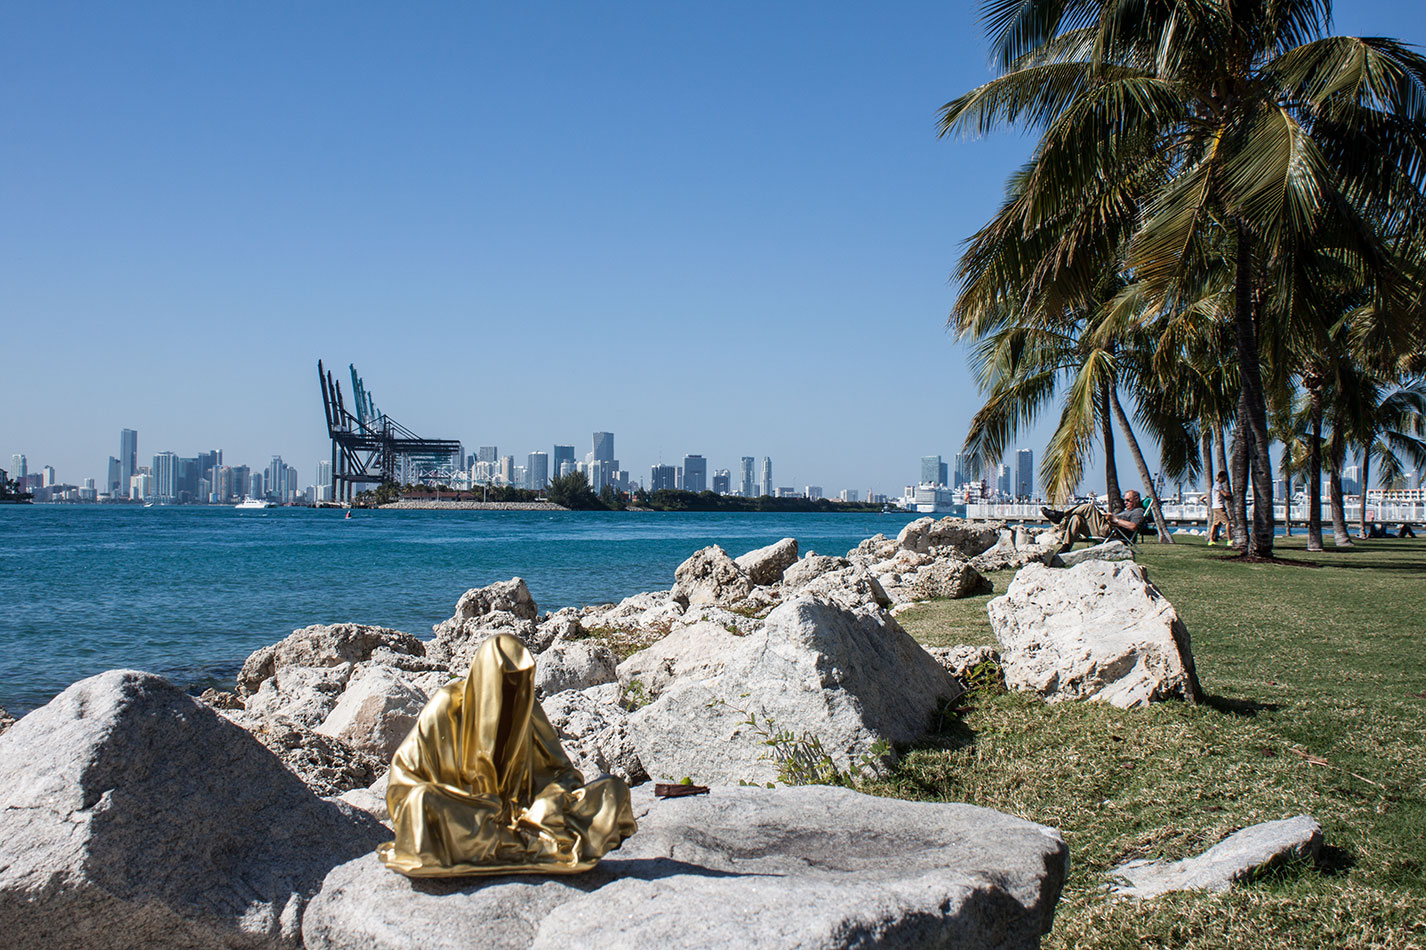 public-art-basel-miami-beach-fair-usa-florida-guardians-of-time-manfred-kili-kielnhofer-contemporary-fine-art-modern-arts-design-antiques-sculpture-6829